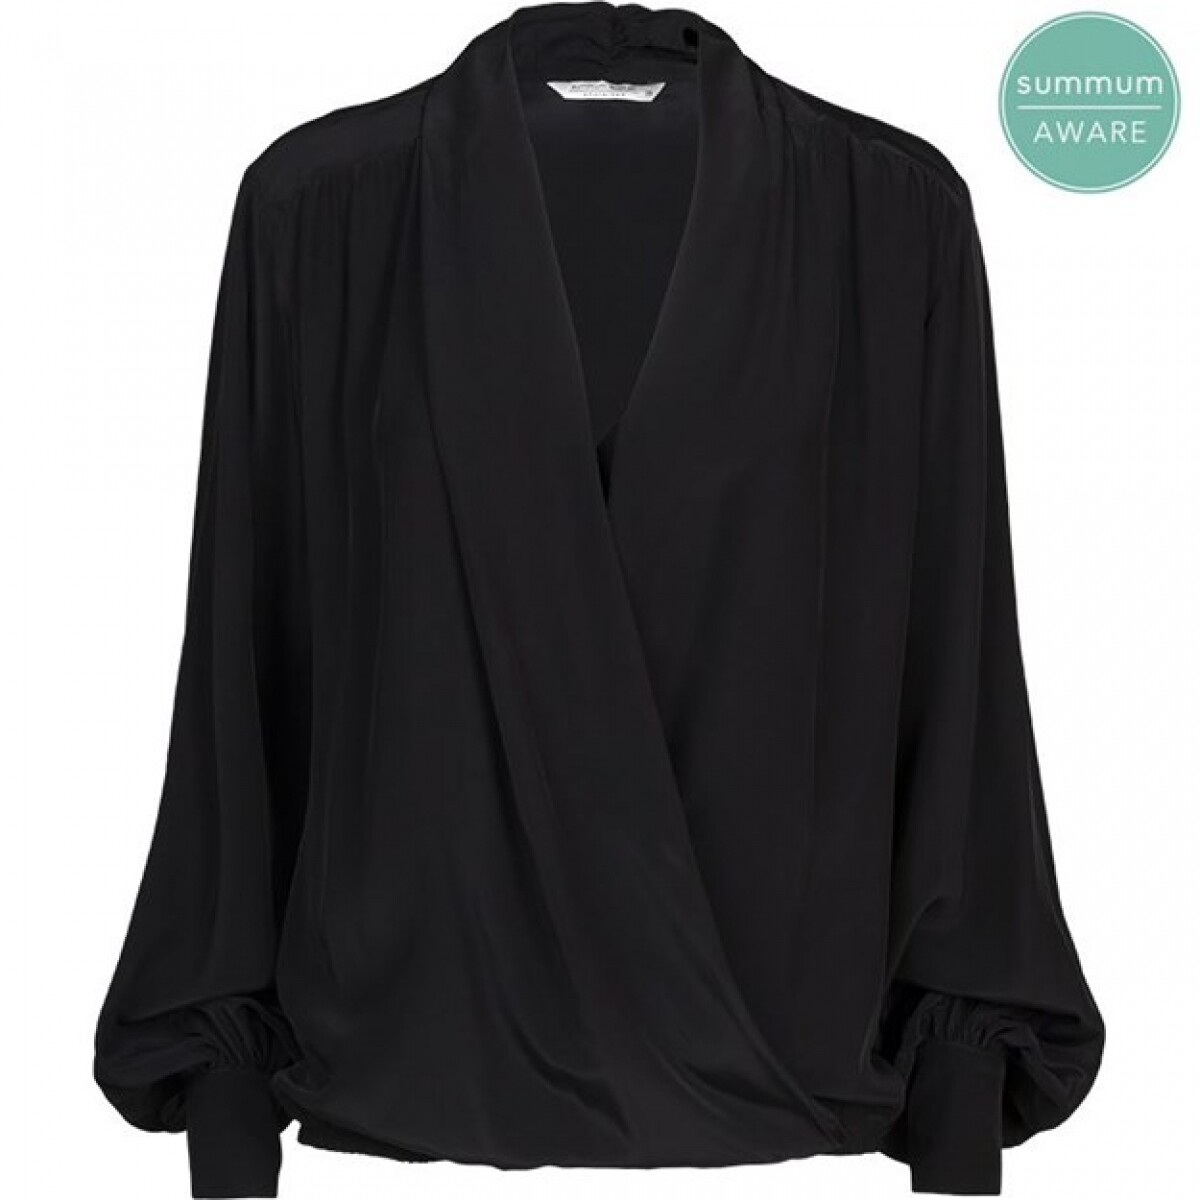 Summum blouse Black